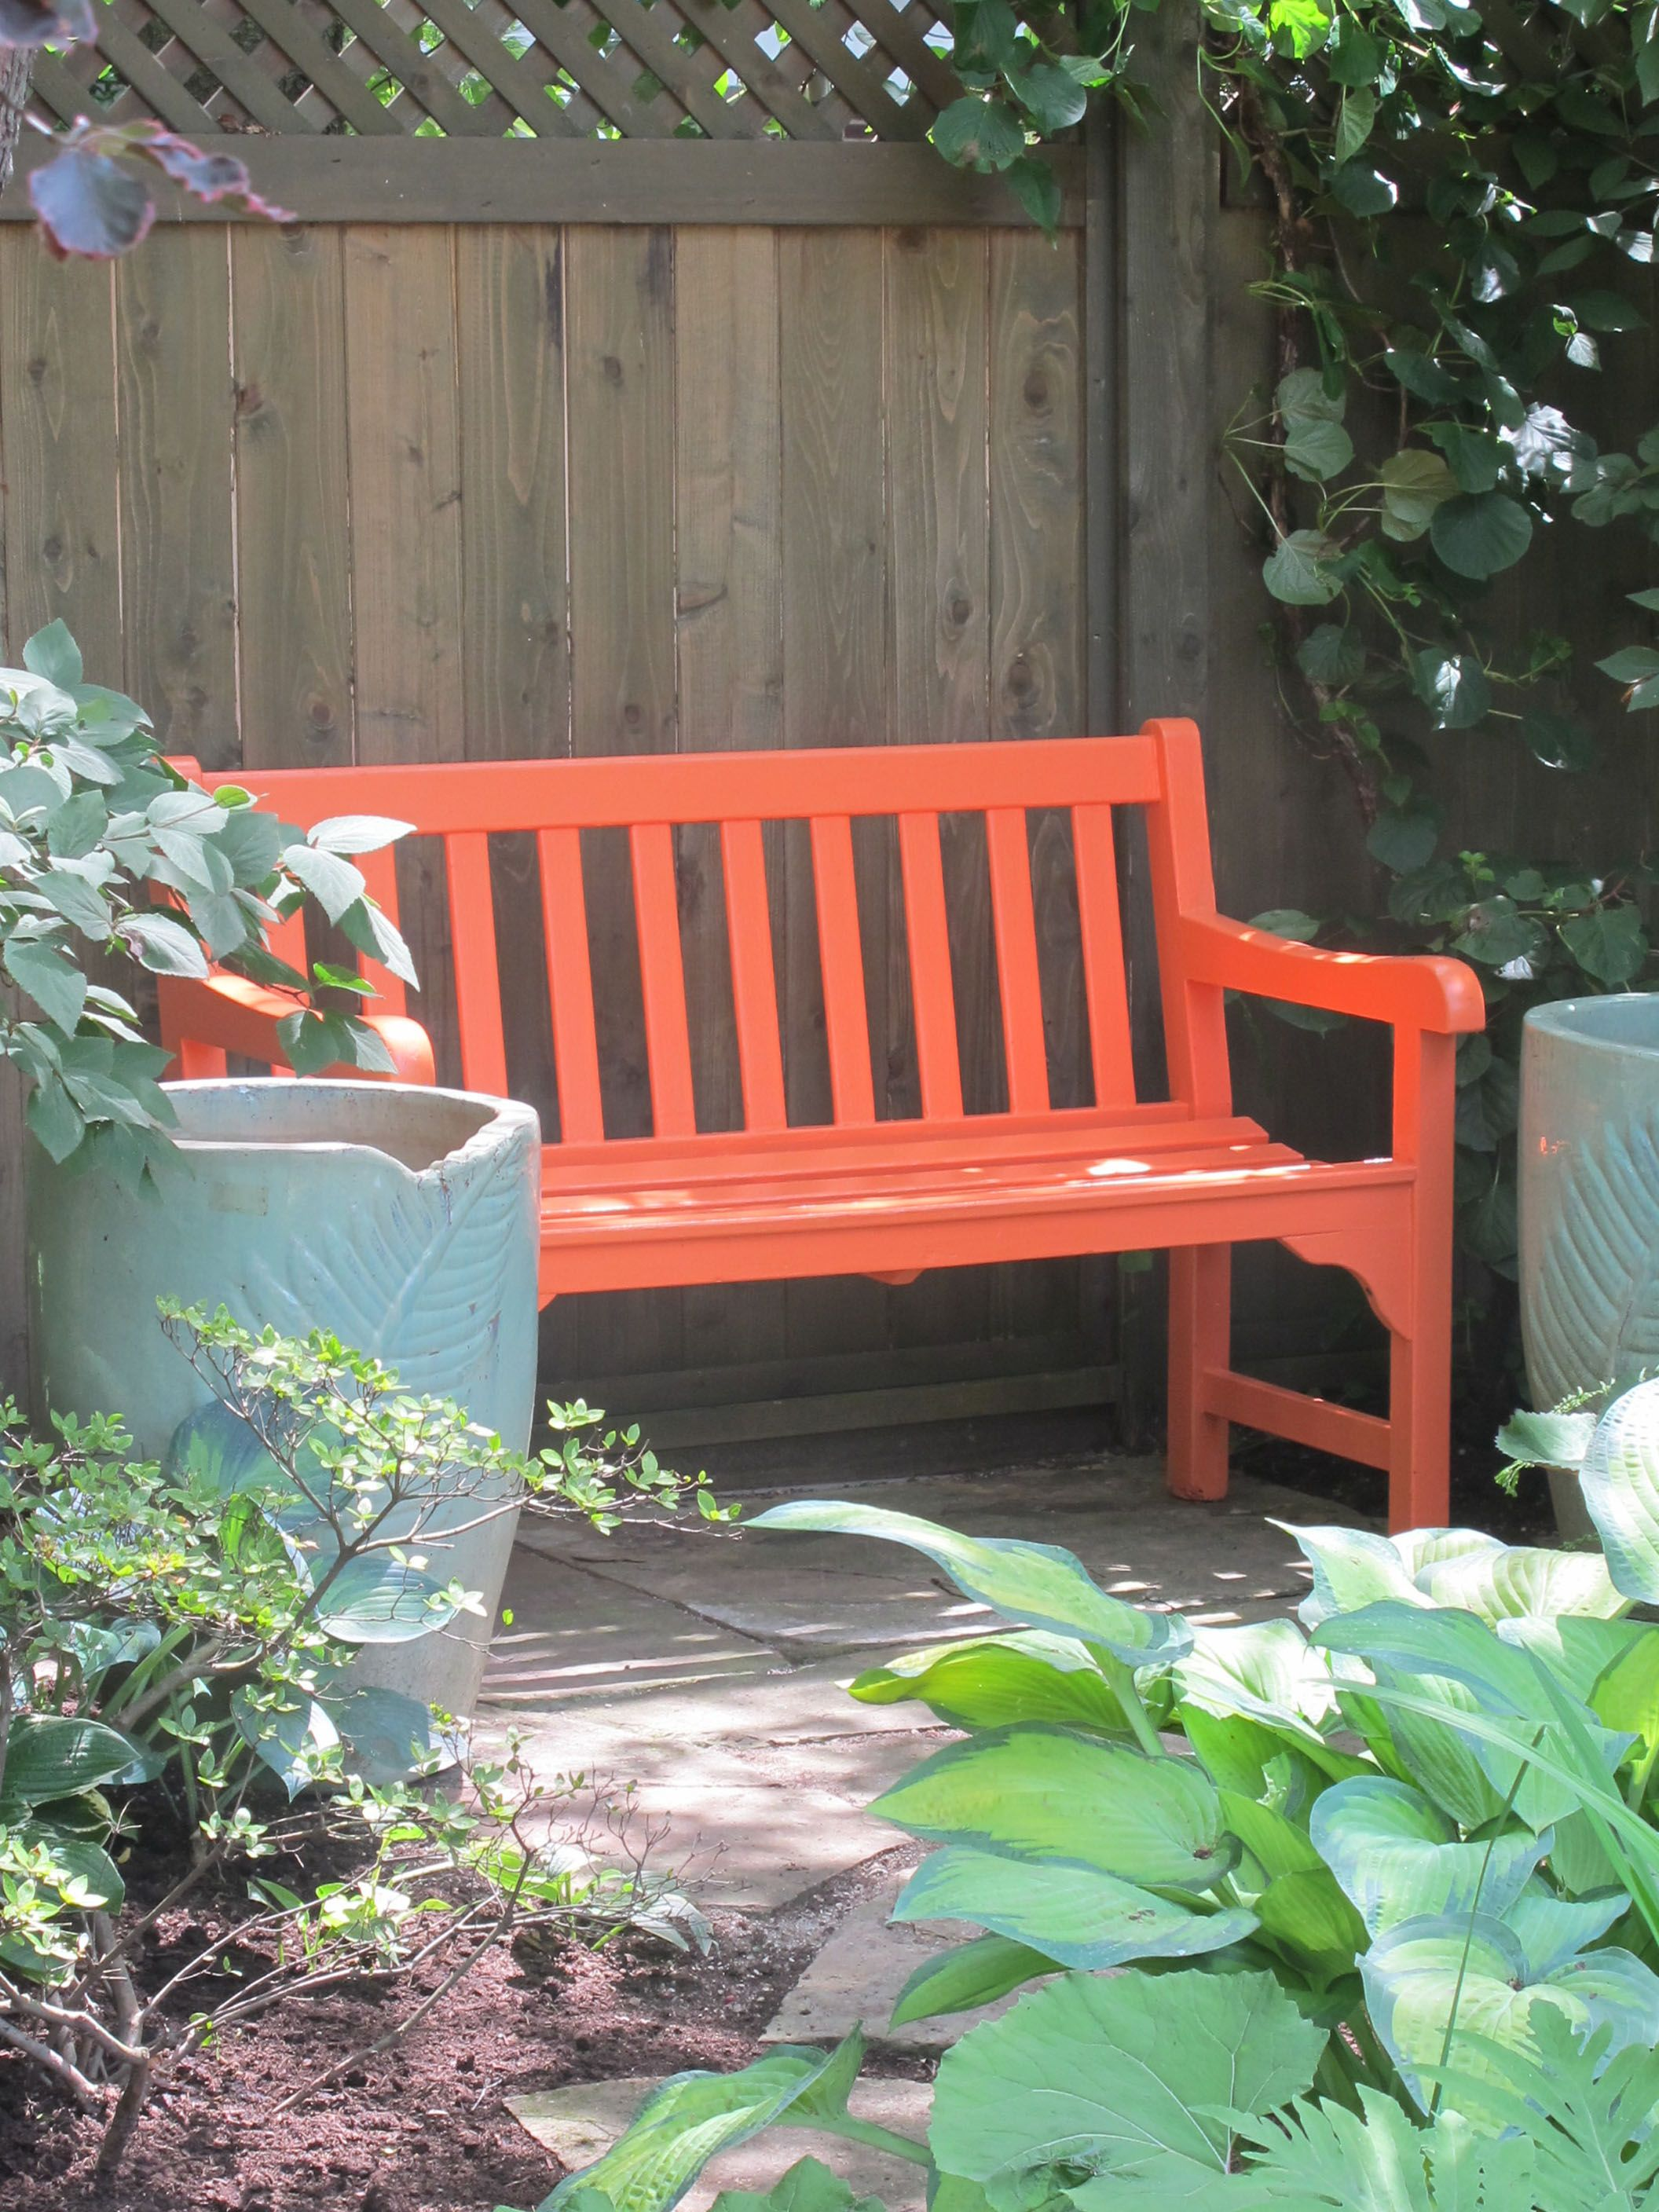 Attractive Painted Benches Outdoor Part - 2: Outdoor Living